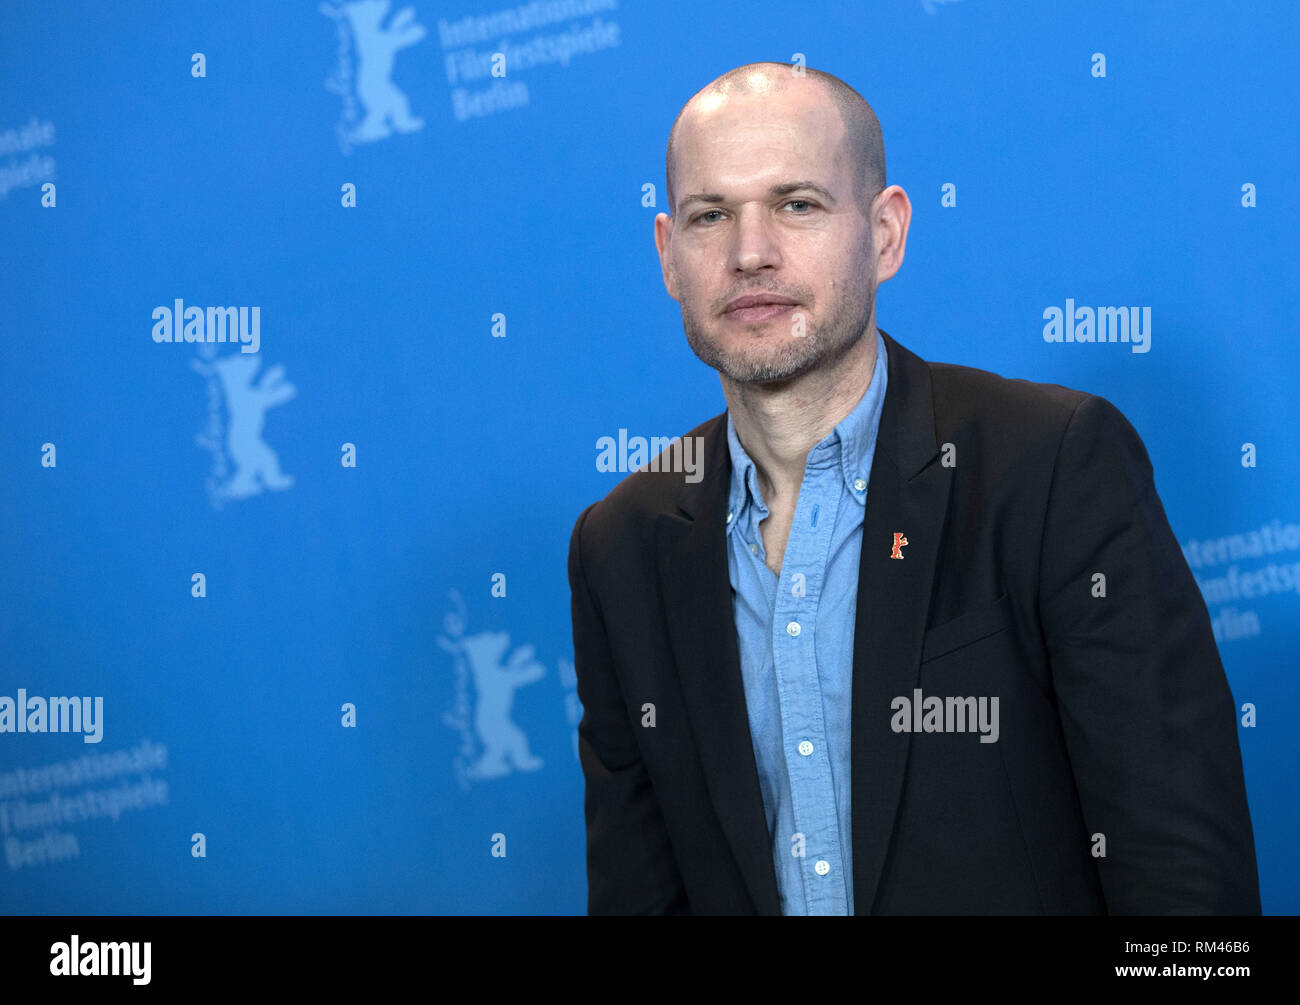 """Berlin, Germany. 13th Feb, 2019. 69th Berlinale: Photocall competition """"Synonymes"""" (Synonyms): Nadav Lapid, director. Credit: Jörg Carstensen/dpa/Alamy Live News Stock Photo"""